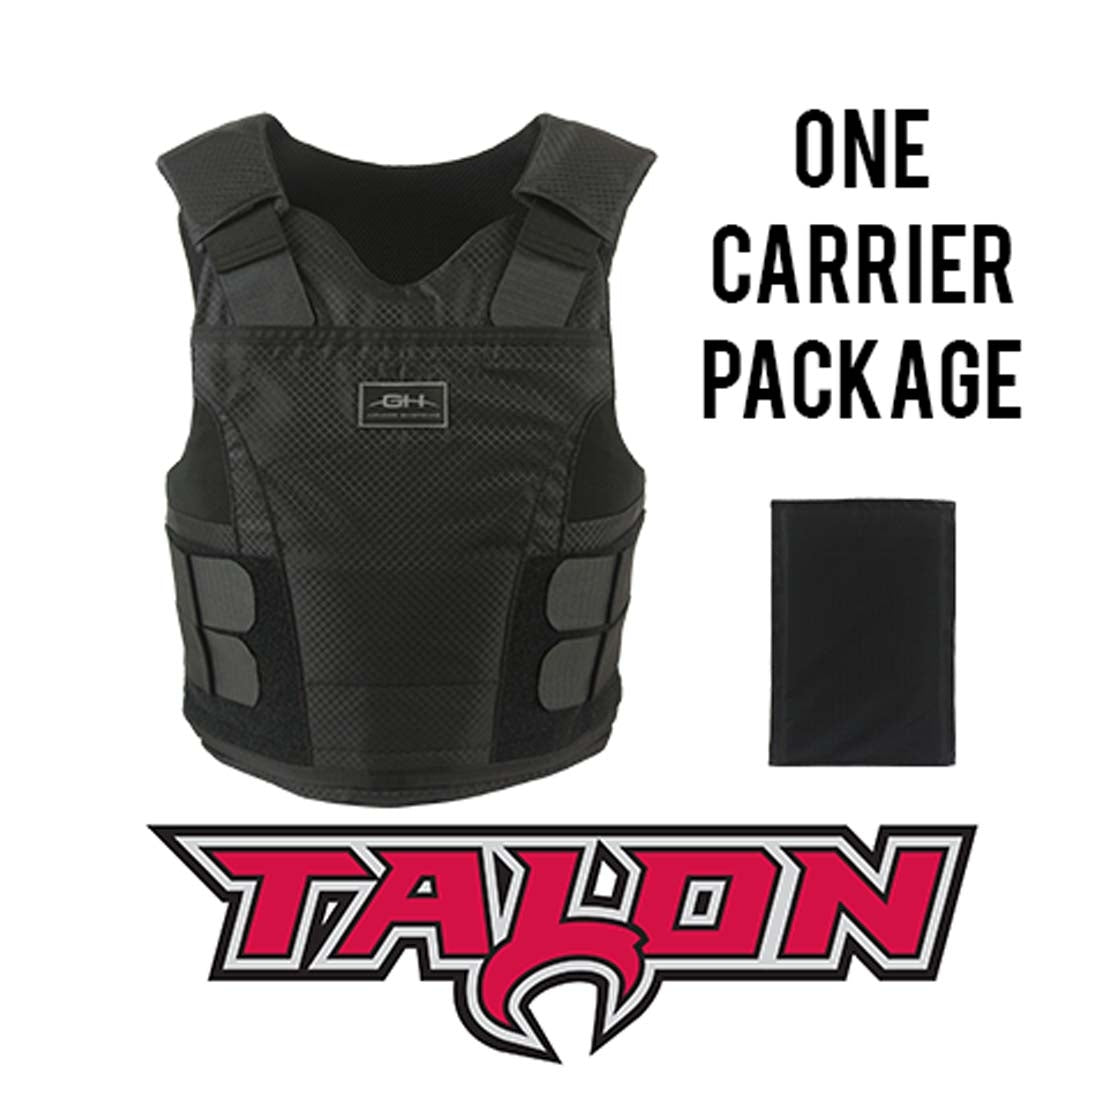 Concealable Body Armor - Talon 1